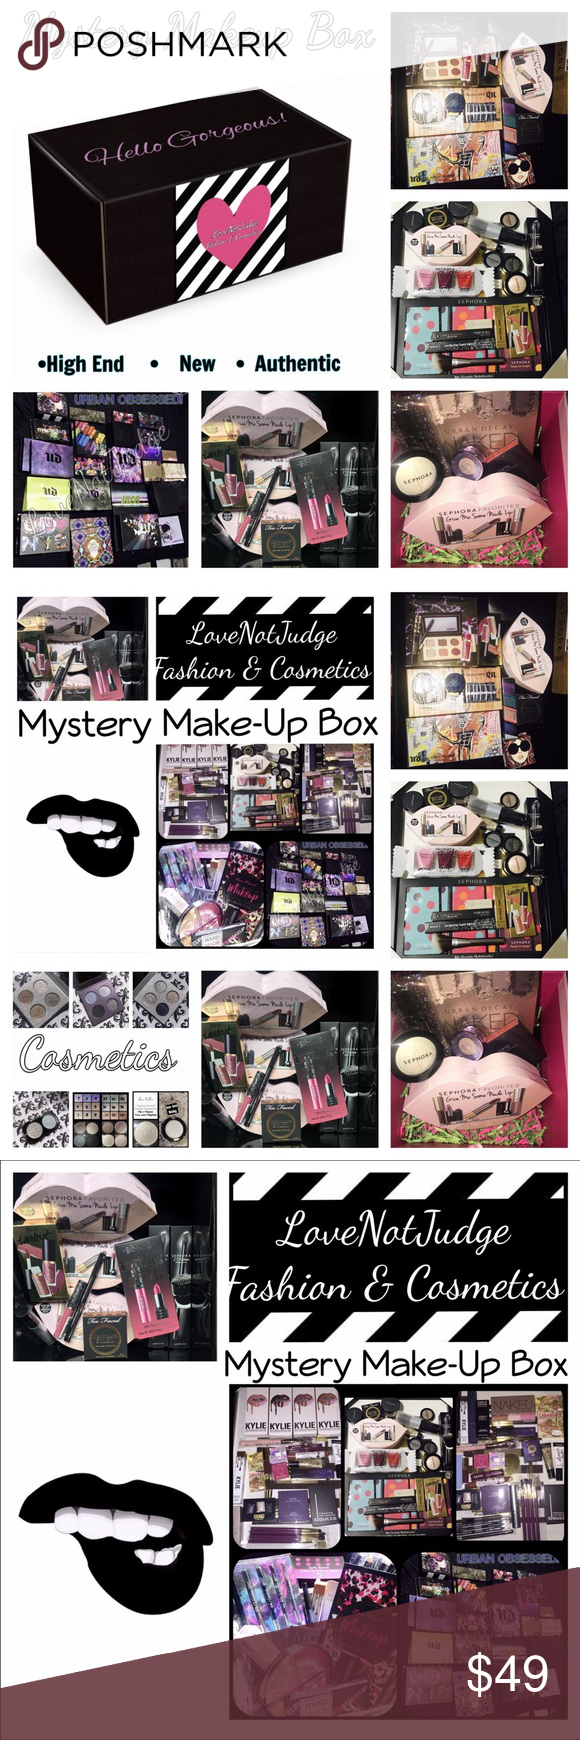 NEW! High End Makeup Mystery Box Makeup Mystery Box! 85